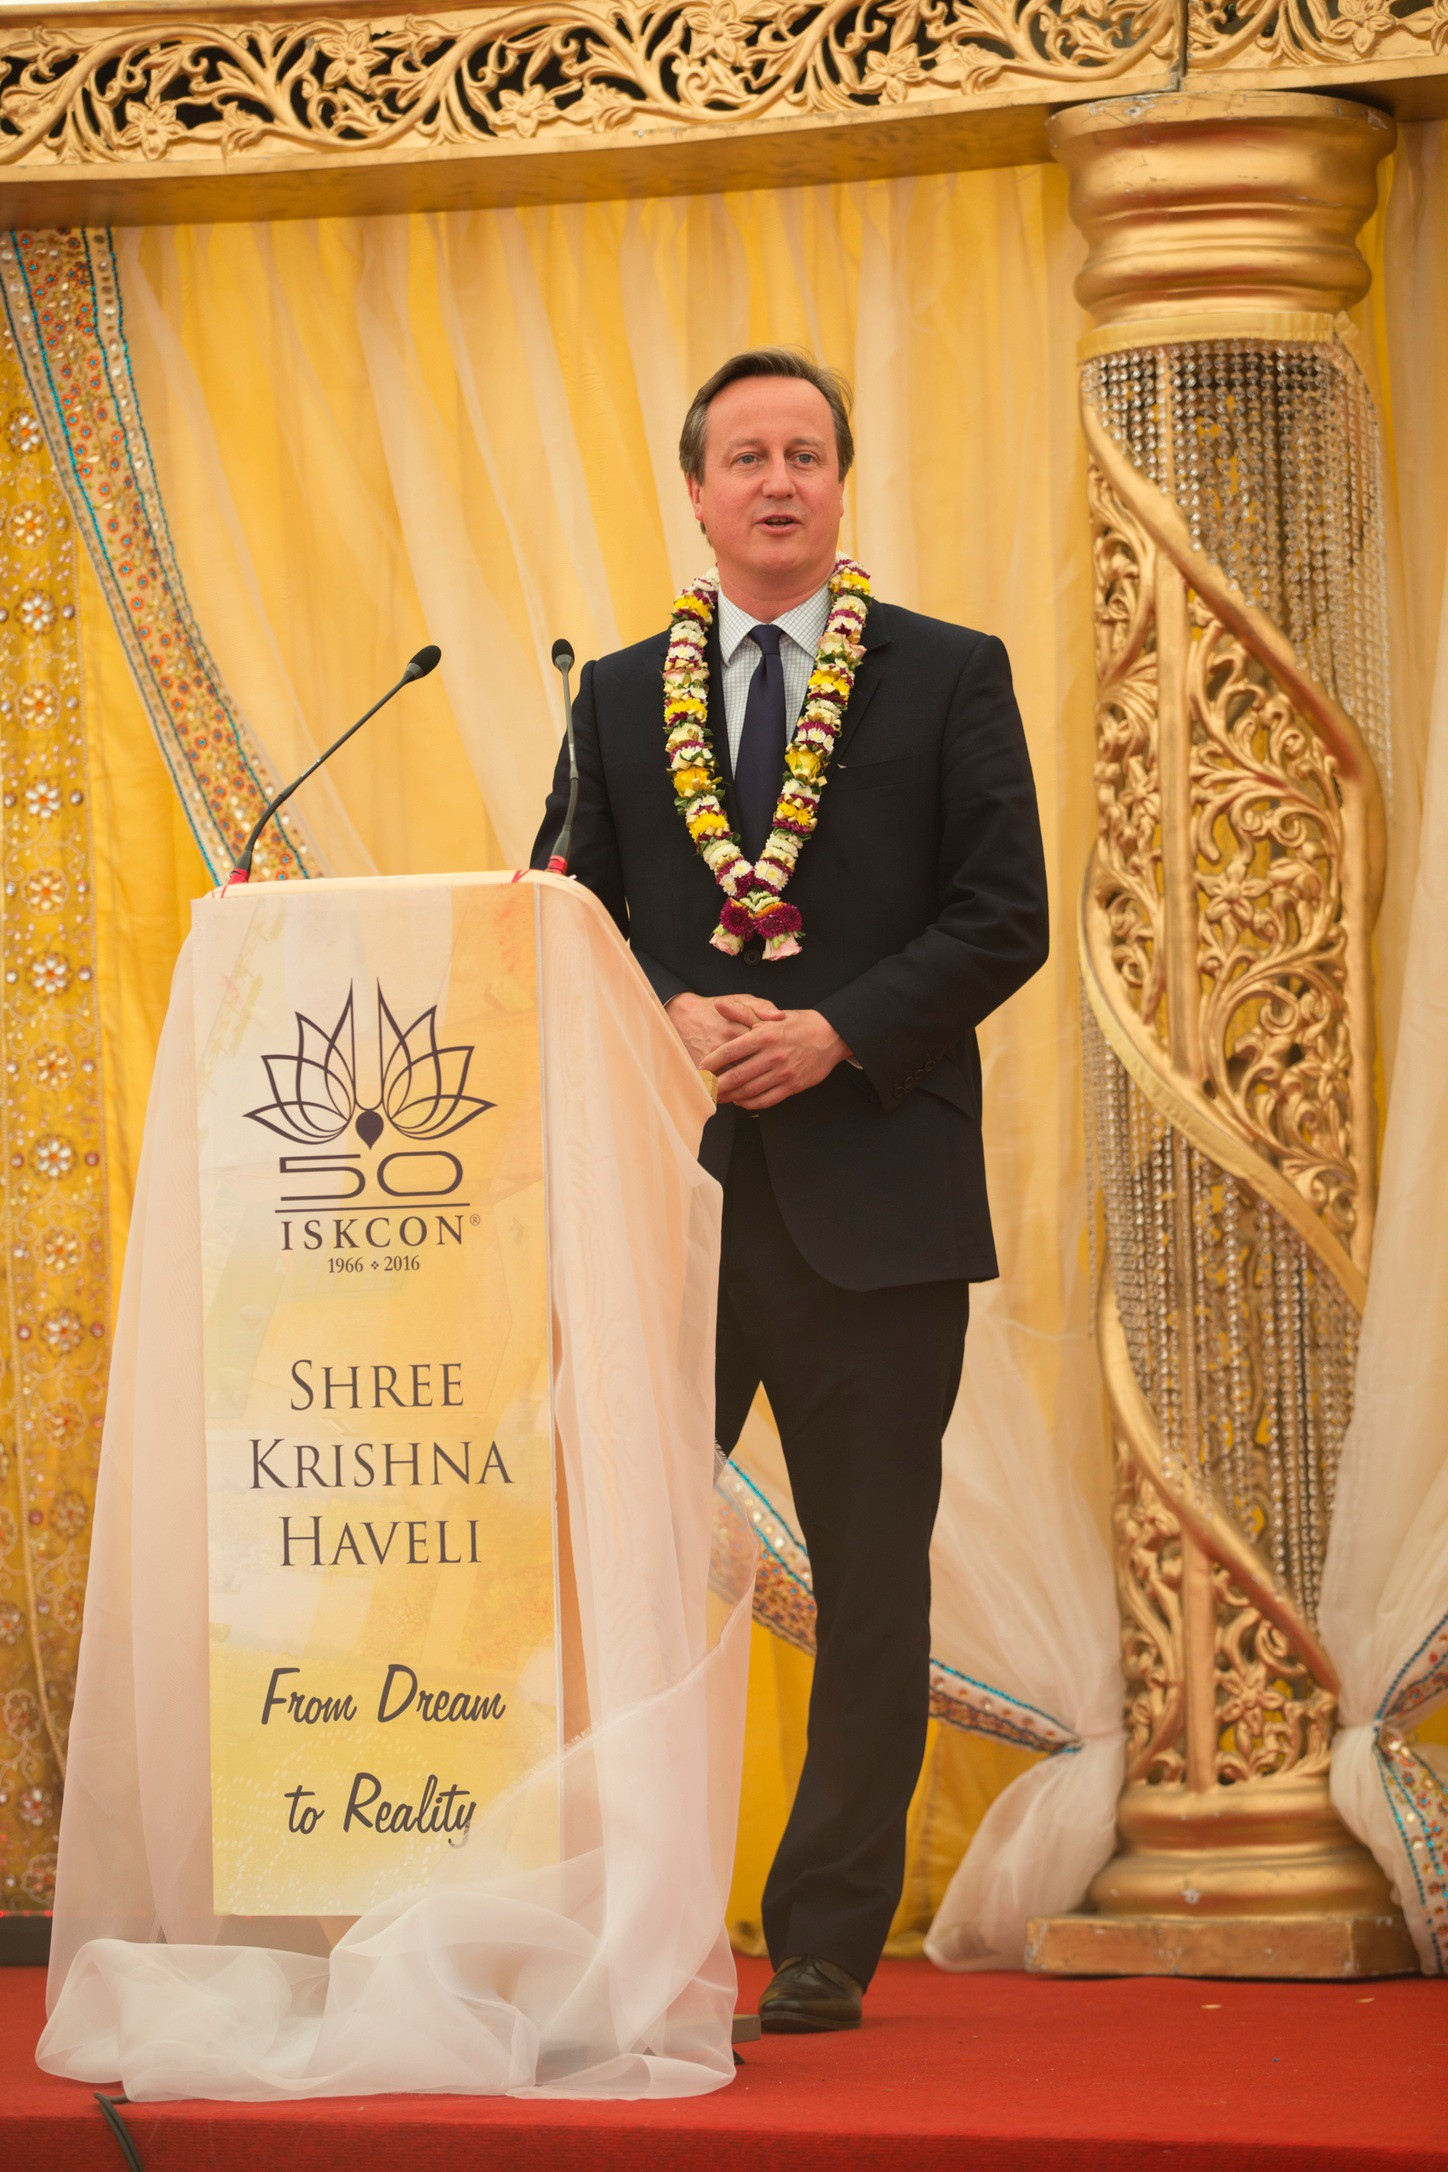 UK Prime Minister David Cameron celebrates ISKCON's 50th anniversary